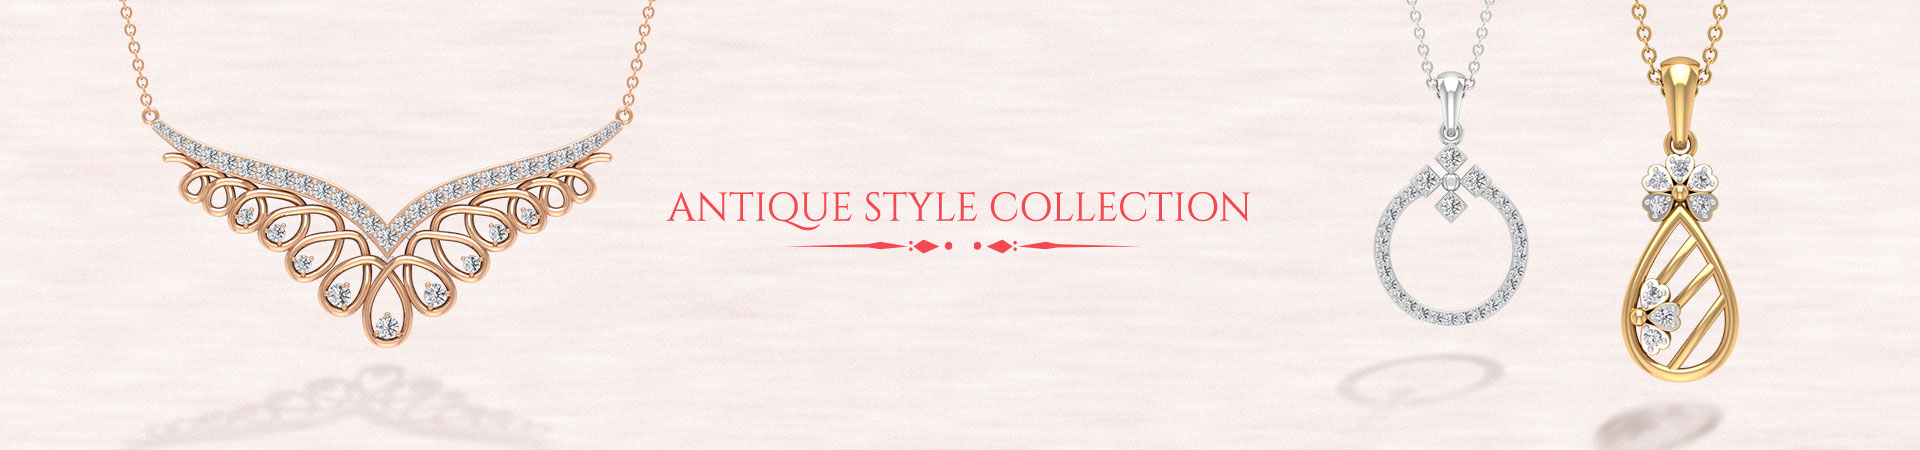 Antique Style Collections